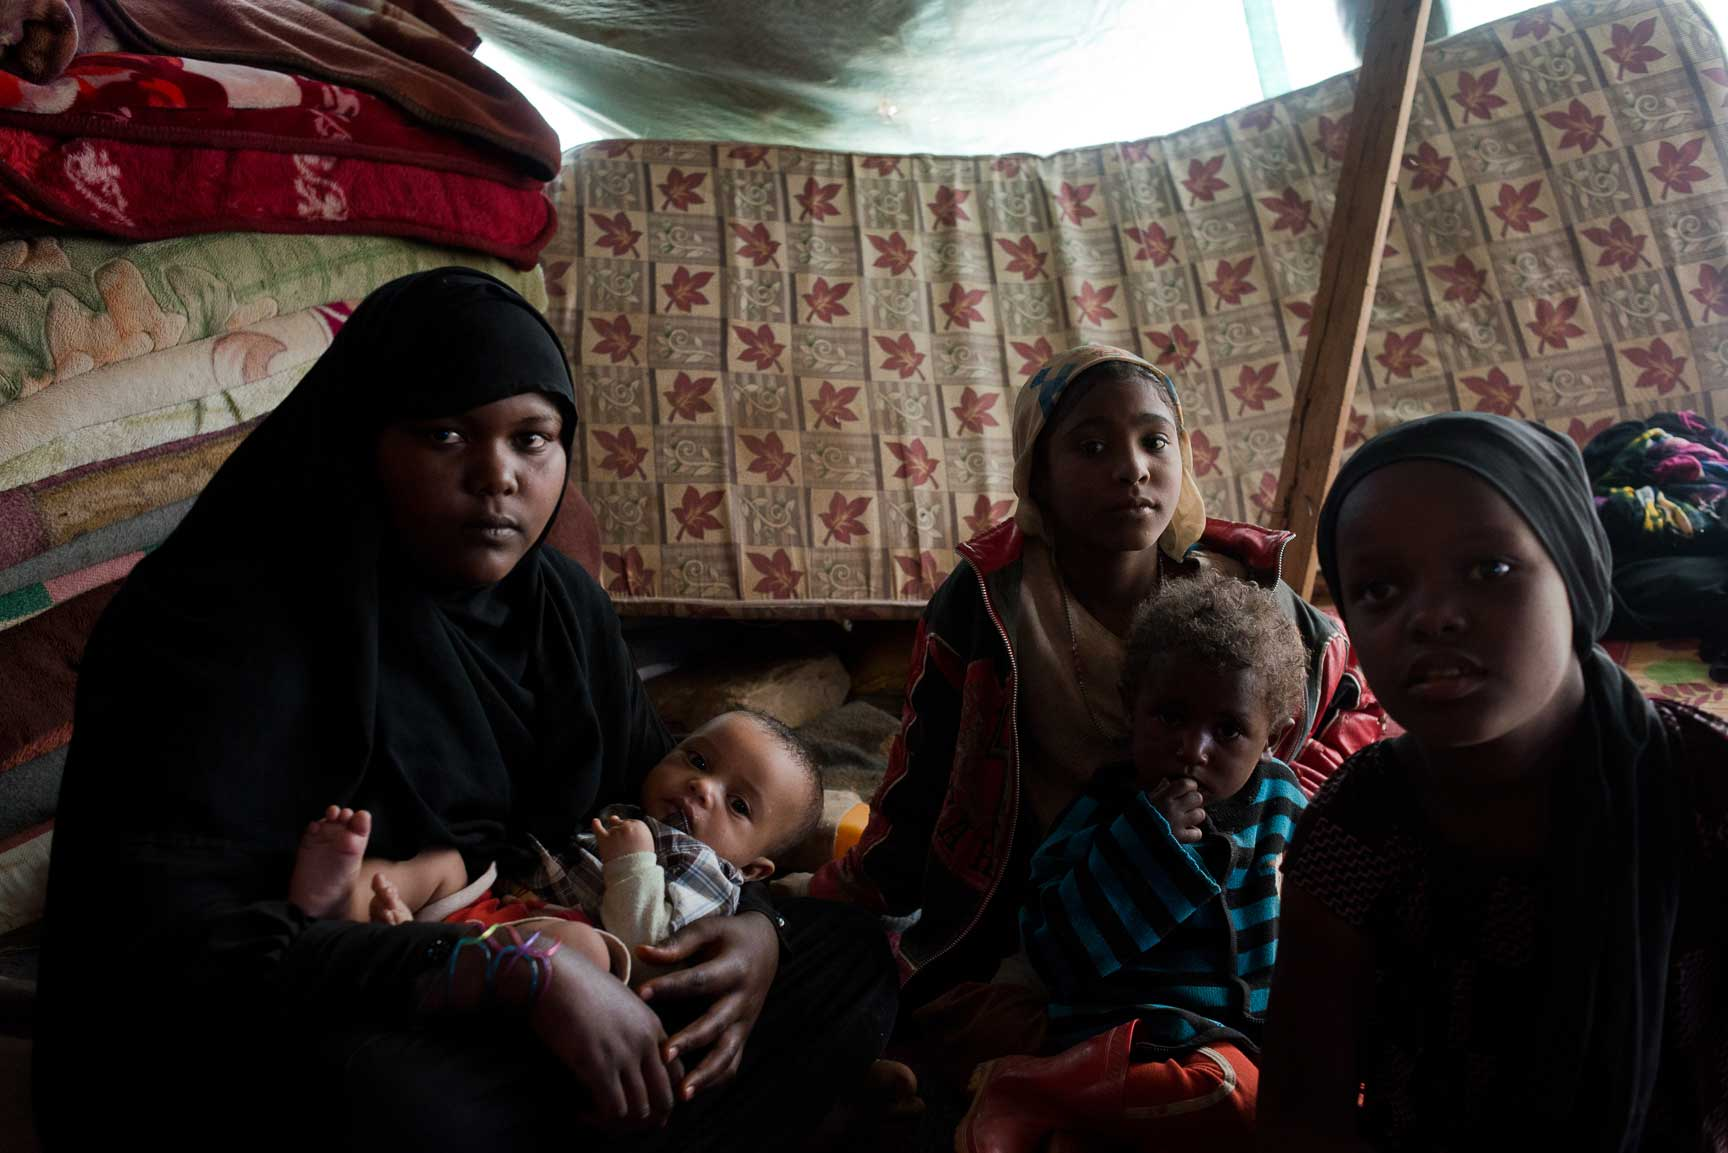 Children from a Yemeni family originally from the heavy-hit northern province of Sa'ada sit in their tent outside on July 7, 2015 in Amran, Yemen. They are members of Yemen's marginalized community, the Muhamashin, most of whom are not able to shelter in schools or family elsewhere.